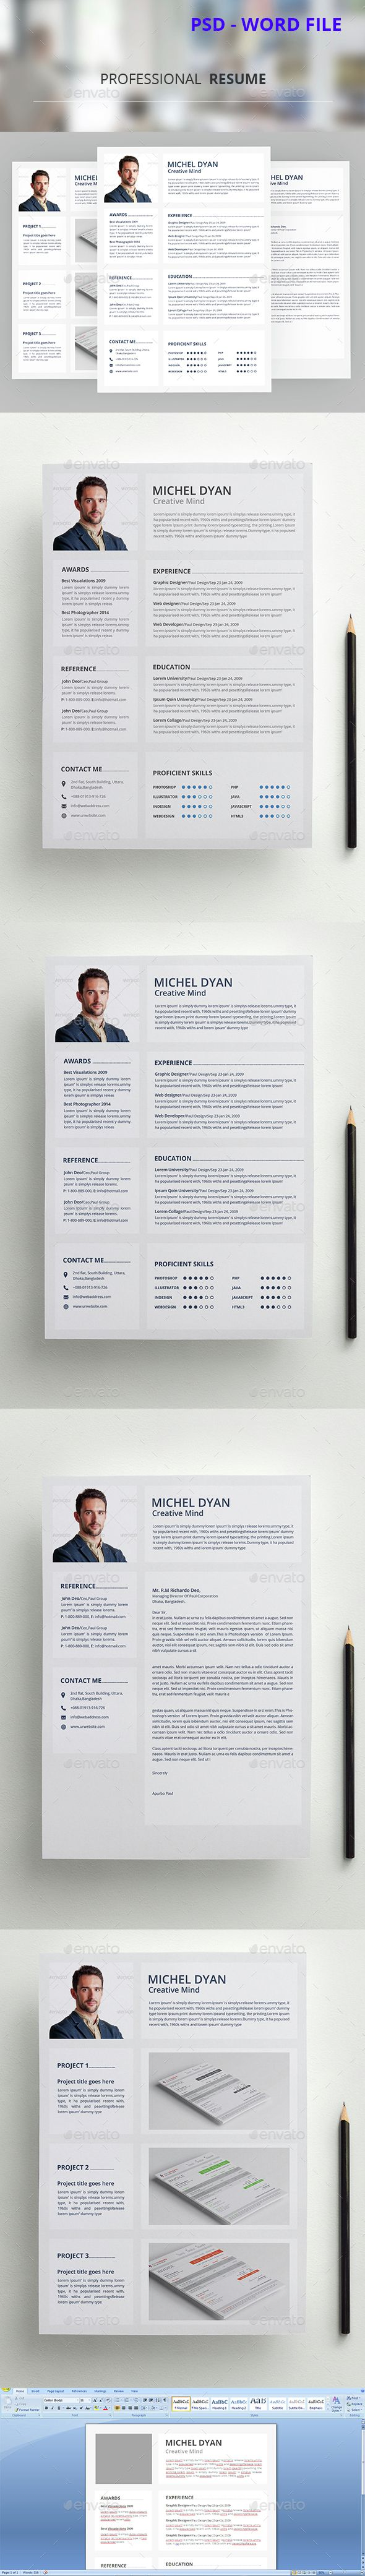 Comfortable 1 Year Experience Resume Format For Dot Net Thin 1.5 Inch Hexagon Template Shaped 100 Template 1099 Excel Template Youthful 1099 Misc Form Template Coloured12 Inch Ruler Template 61 Best Images About CV Designs On Pinterest | Cool Resumes, Cover ..